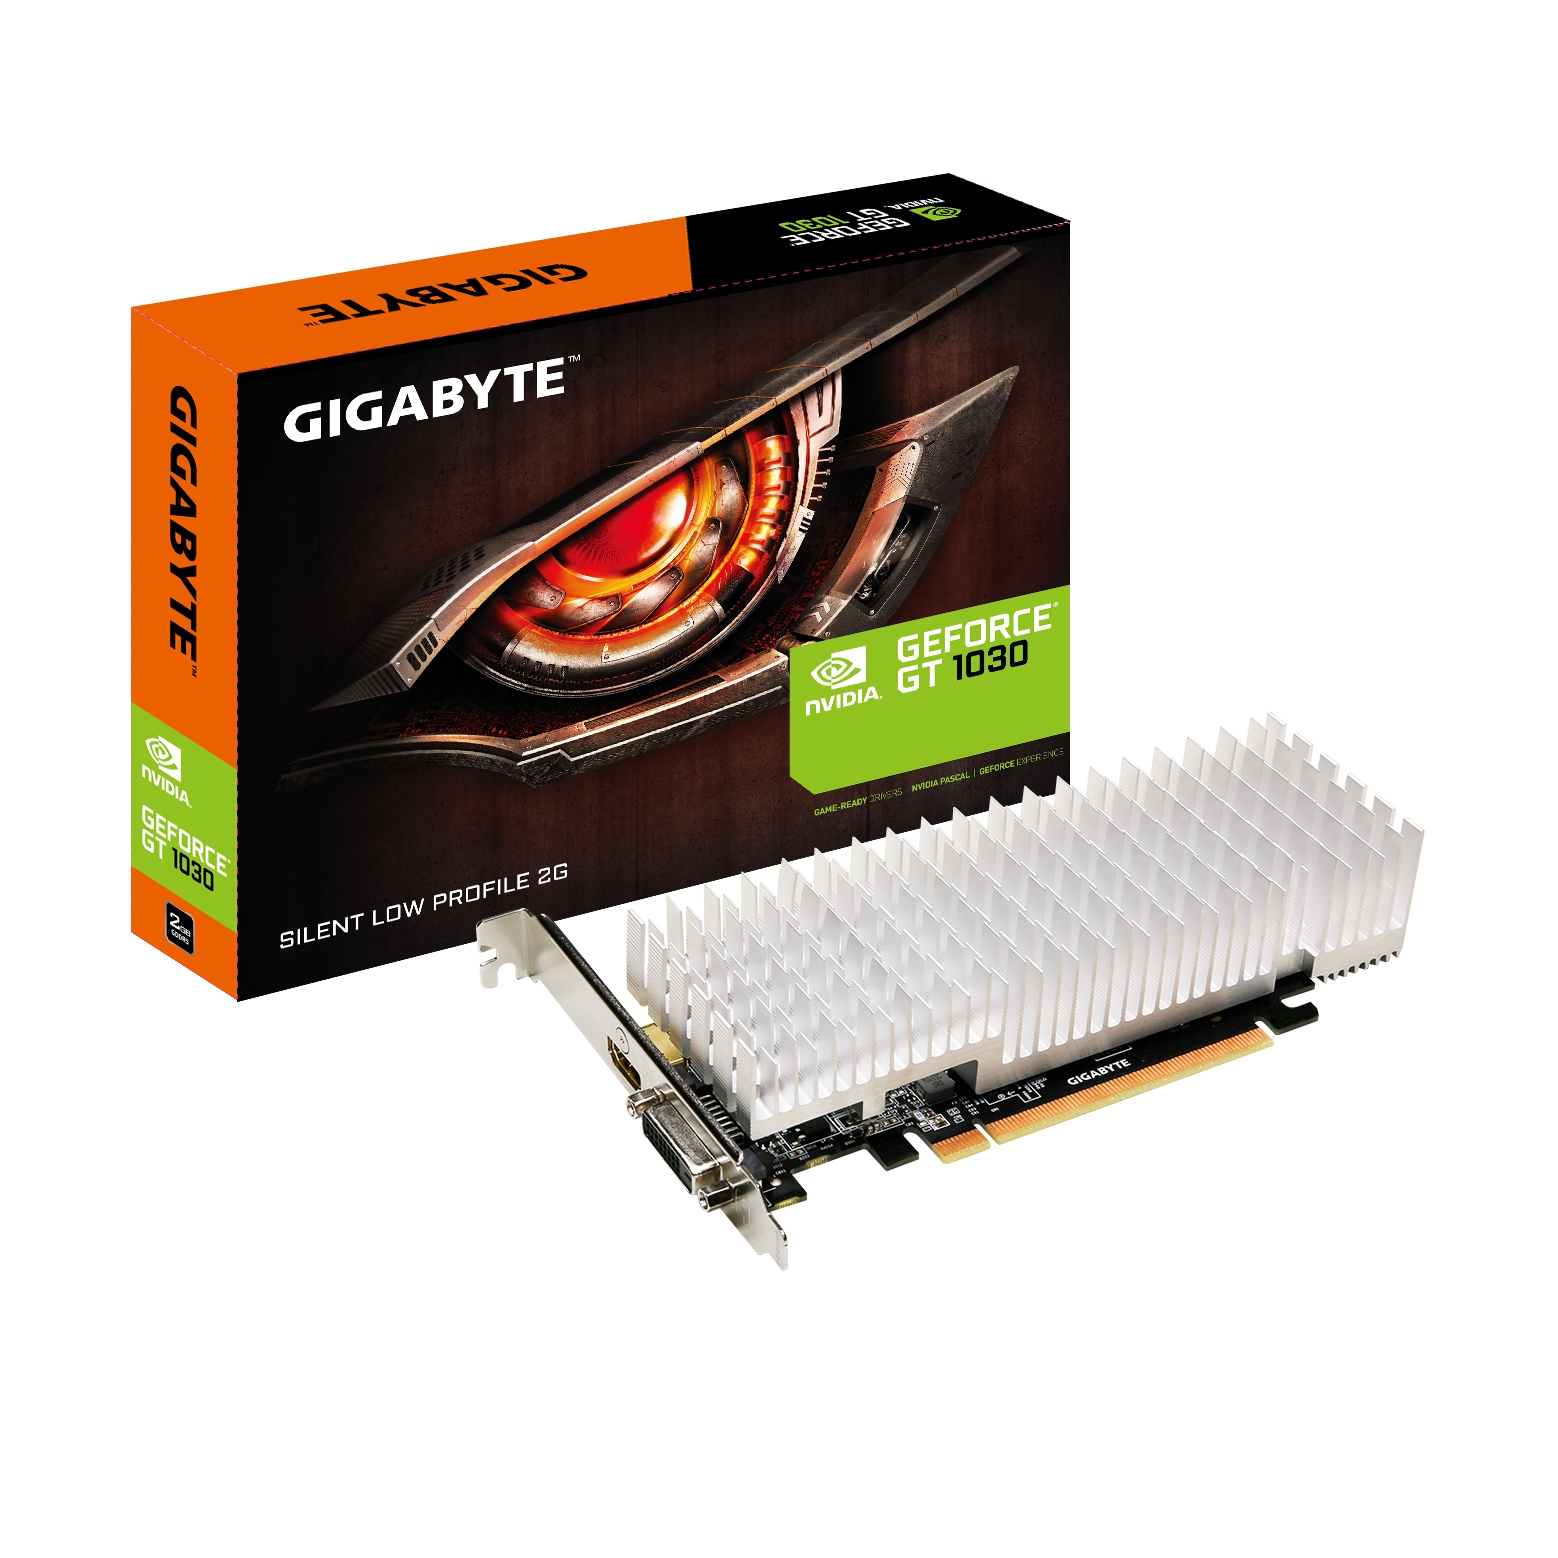 #Karta graficzna Gigabyte GeForce® GT 1030 Silent Low Profile 2G, 2GB, DVI/HDMI